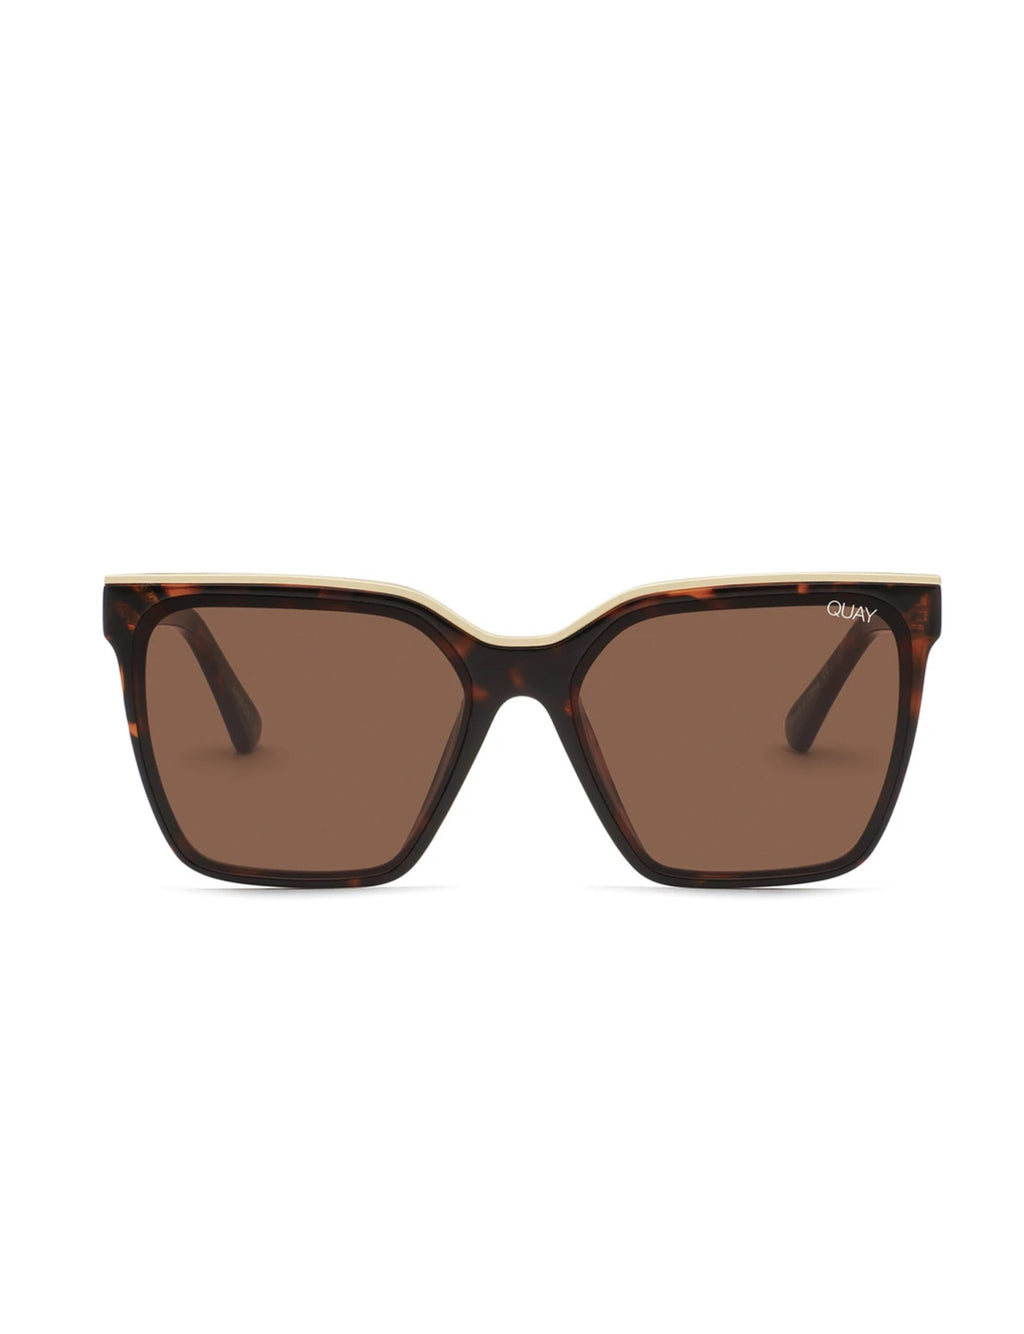 Level Up in Tort Gold/Brown